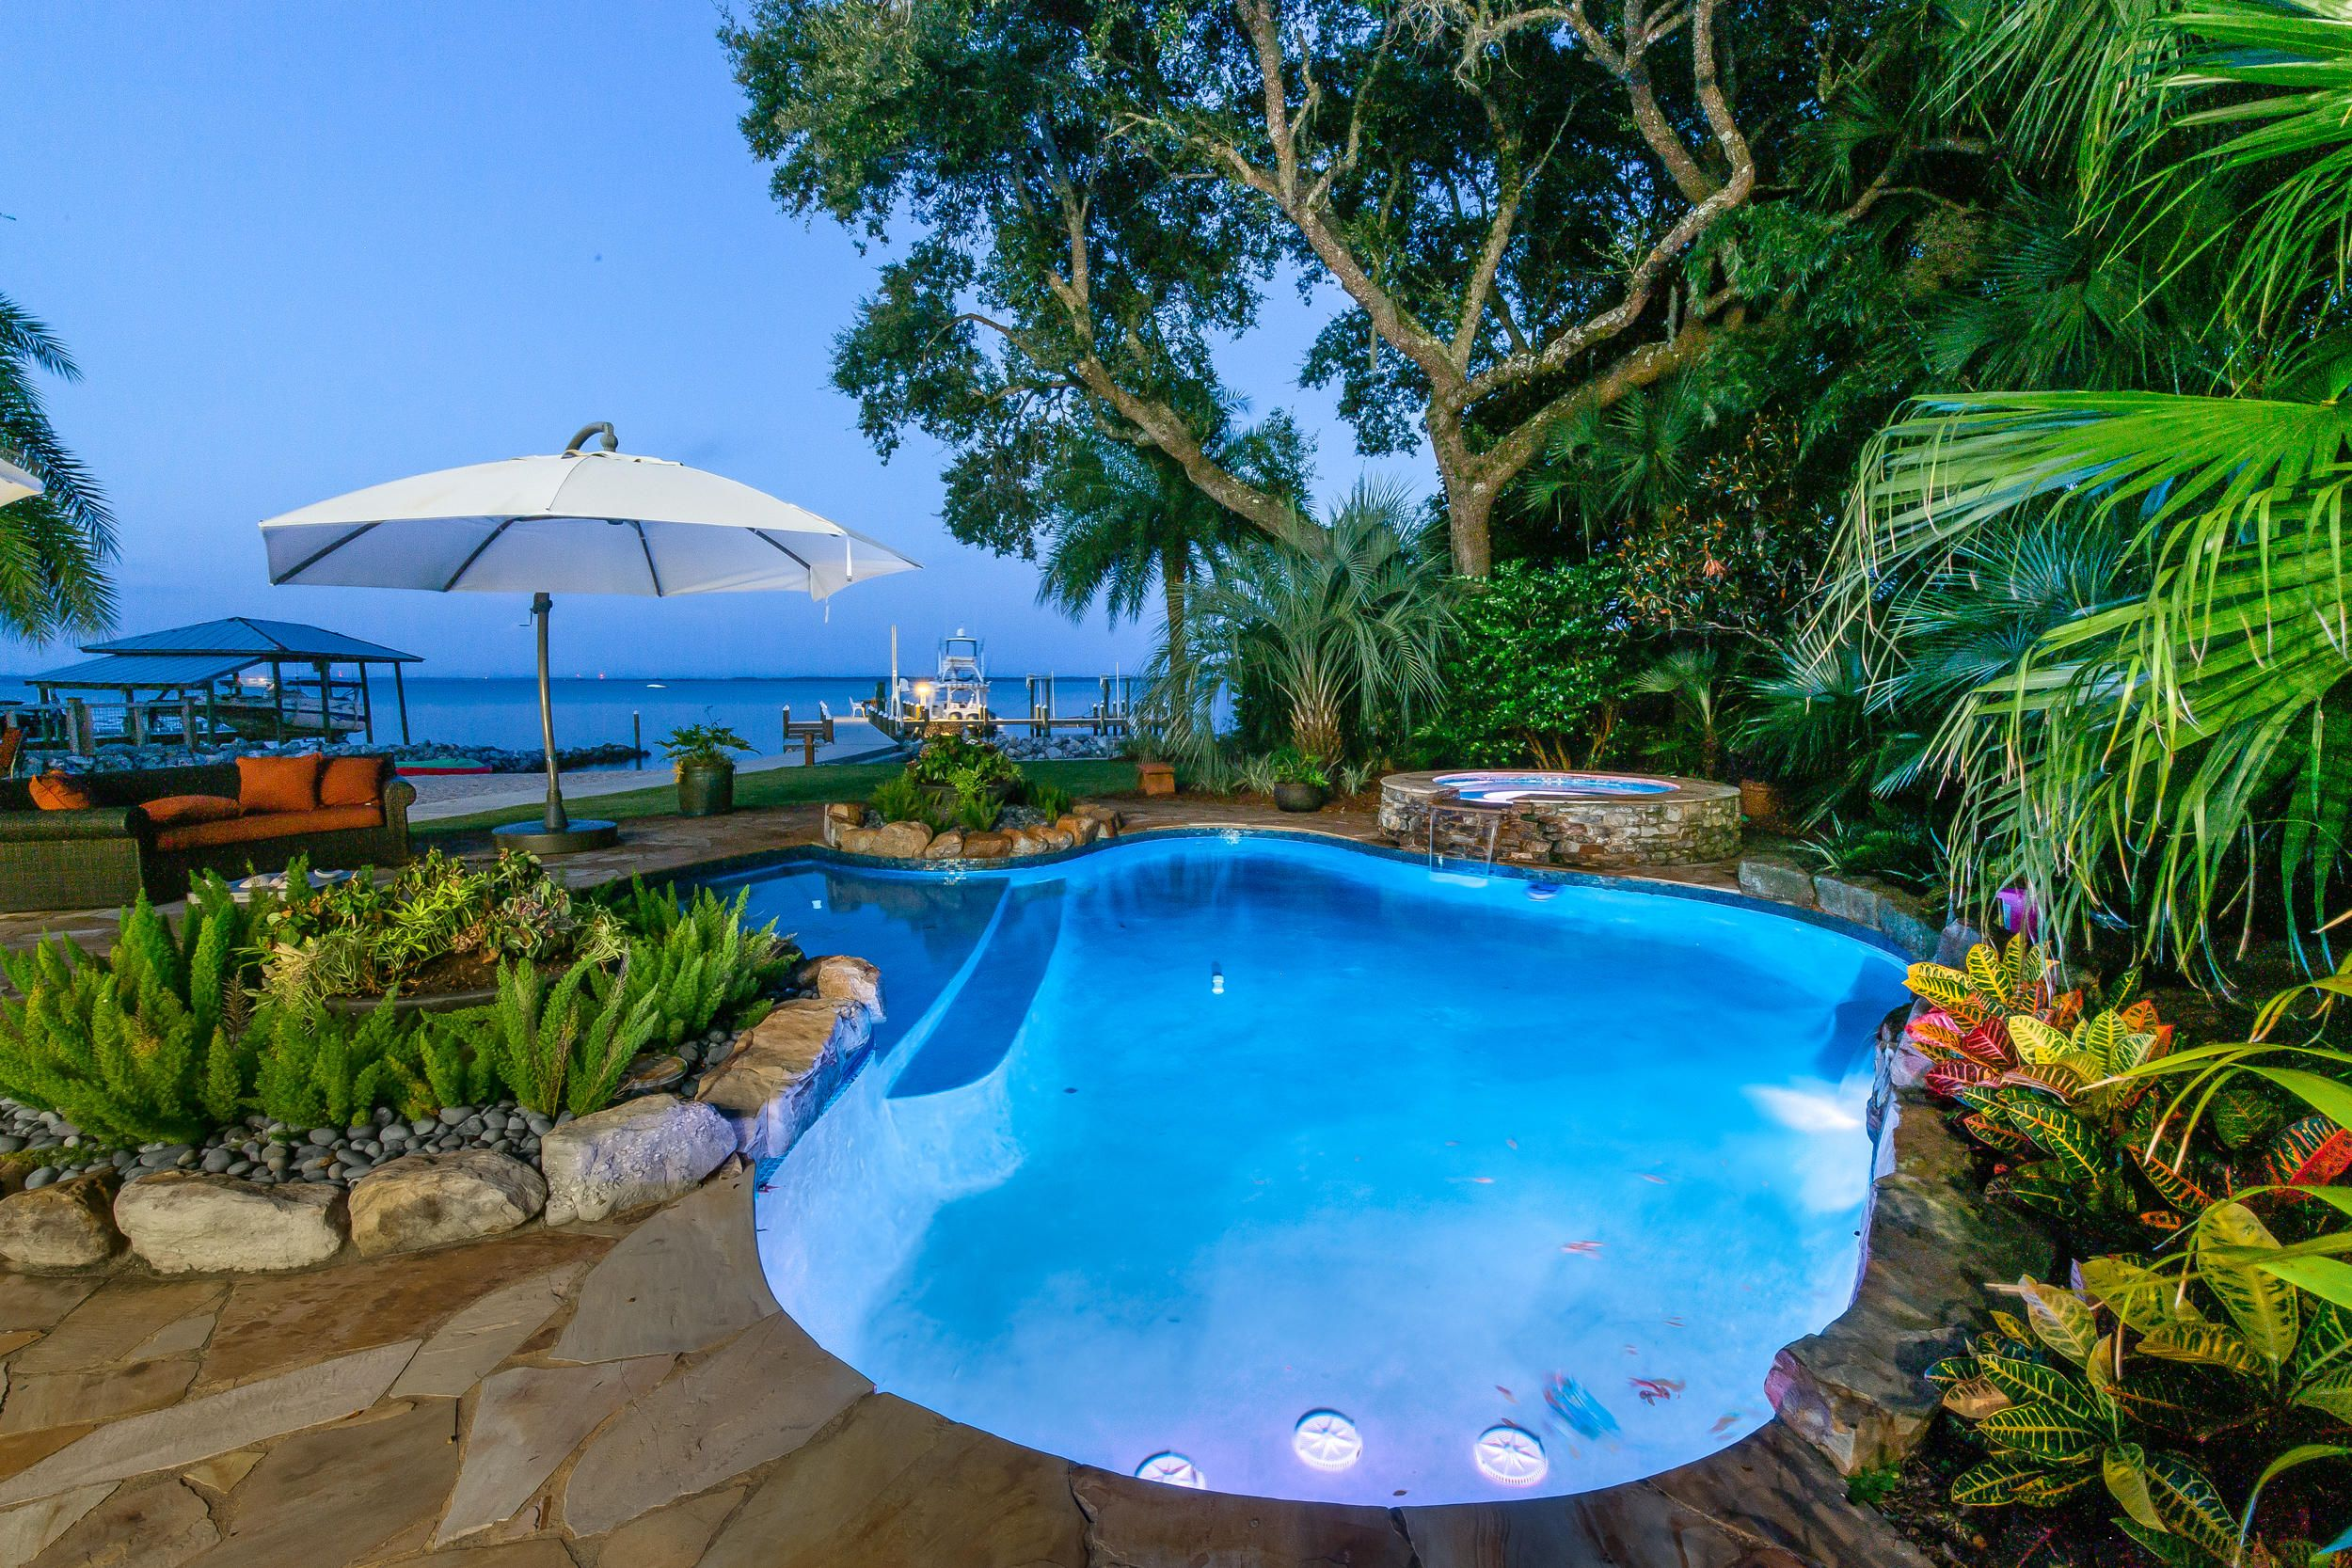 469 Turquoise Bch Drive